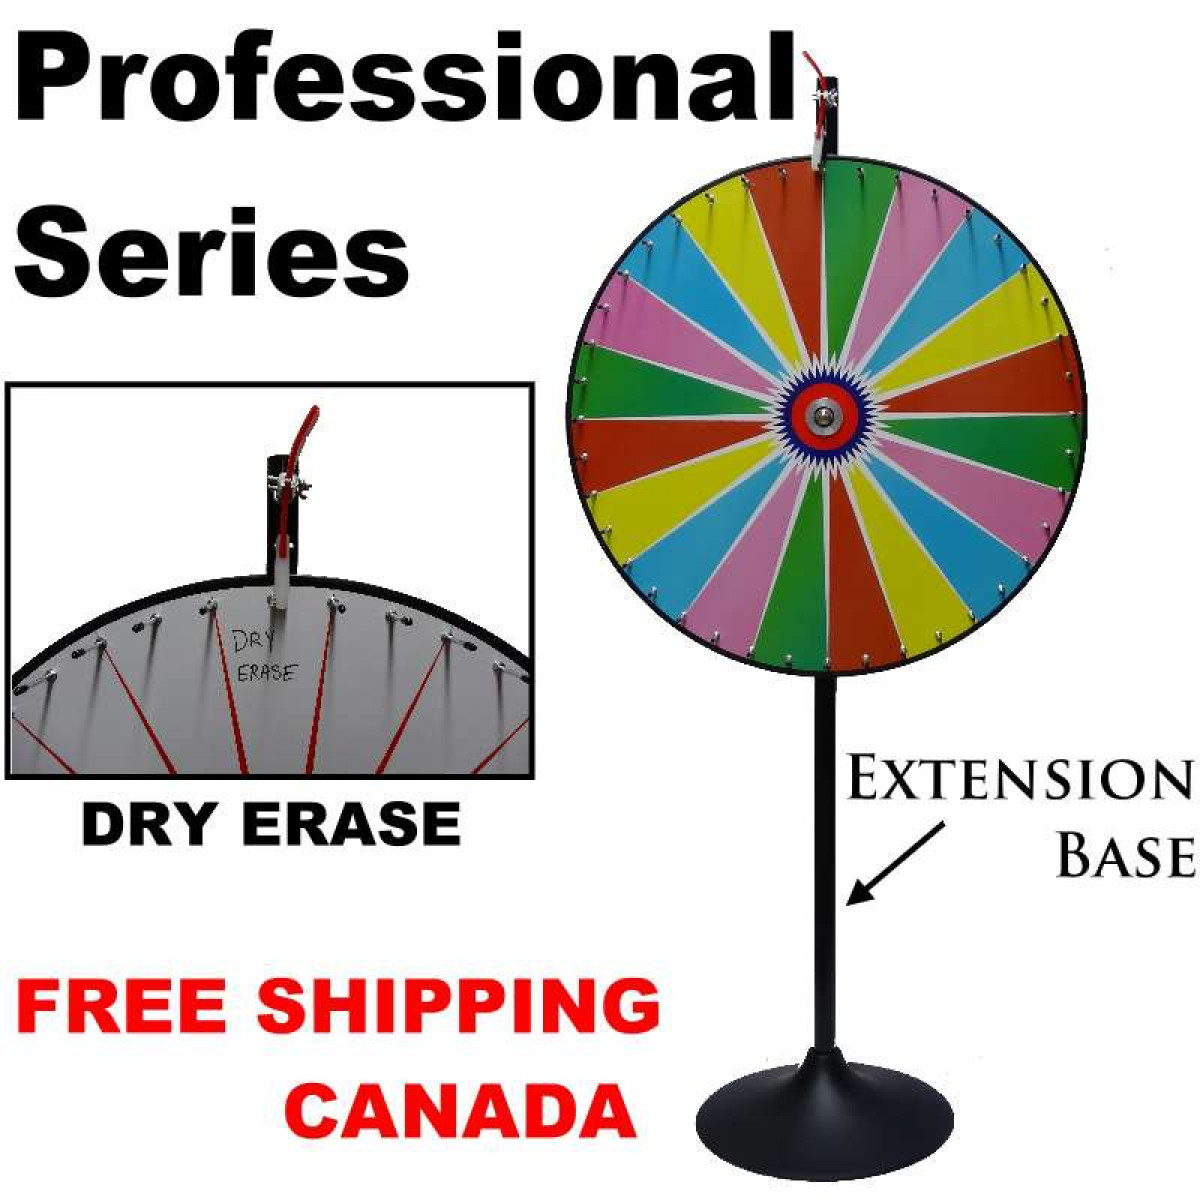 Buy Dry Erase Prize Wheels In Canada